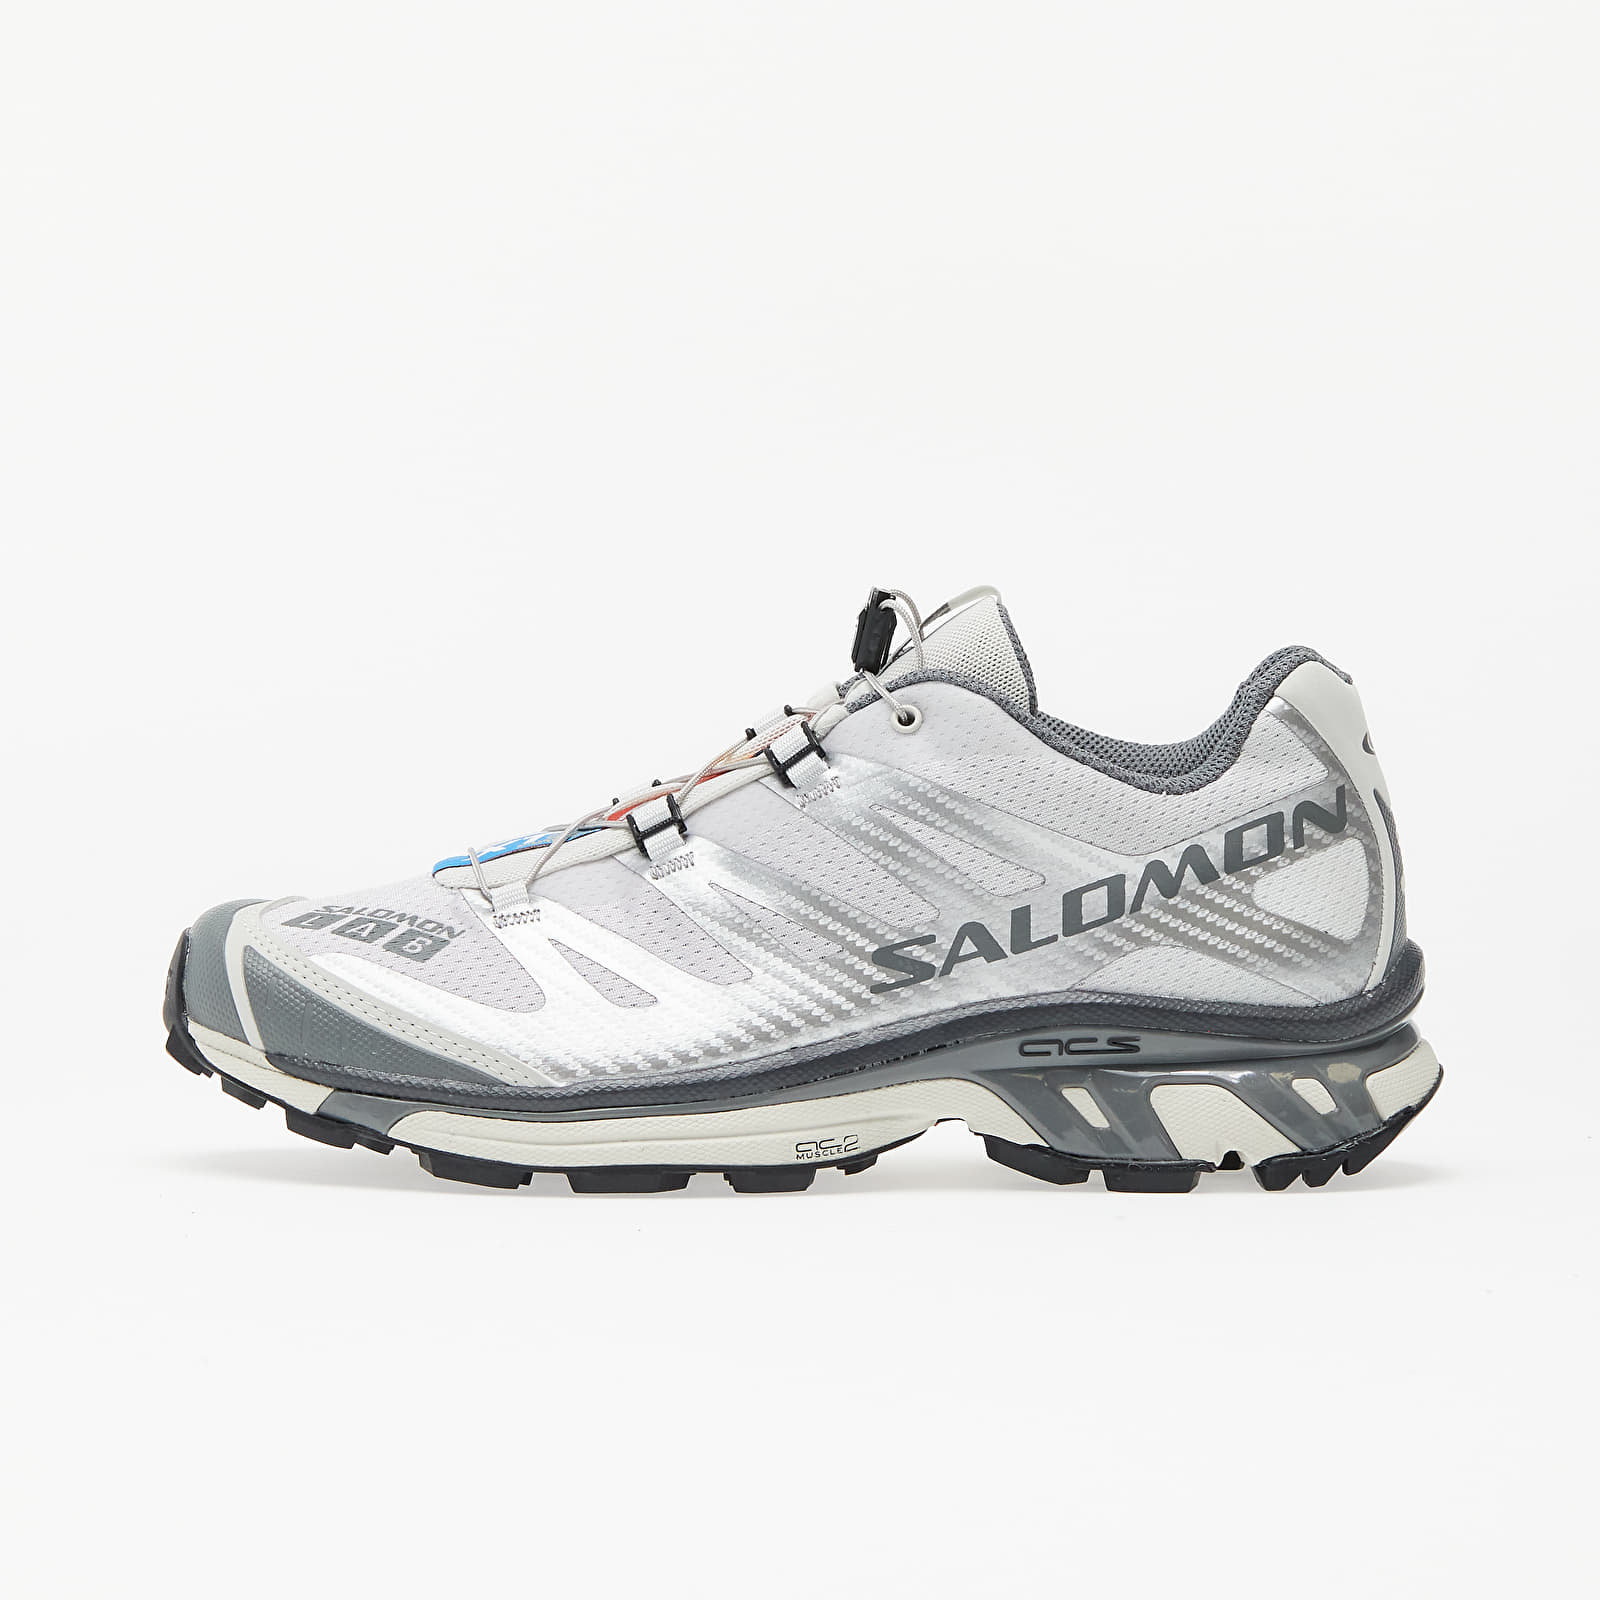 Men's shoes Salomon XT-4 Advanced Silver Metalic/ Lunar Rock/ Black